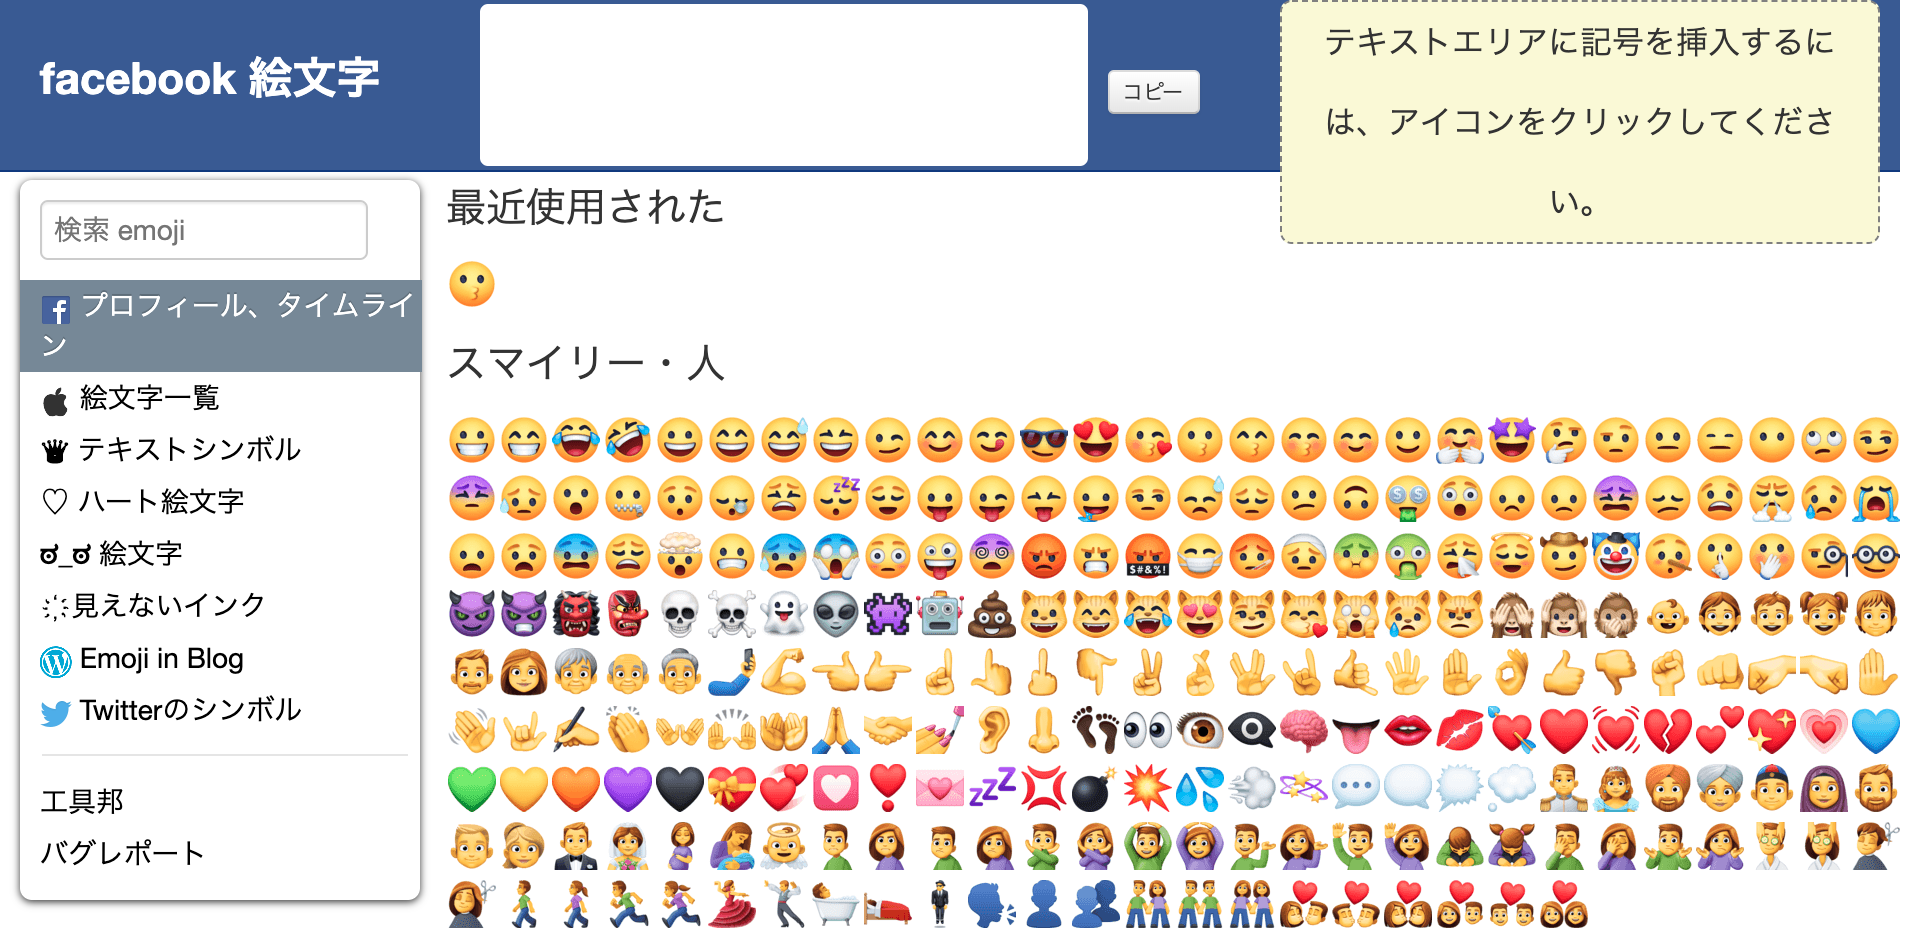 Facebookの絵文字・顔文字一覧